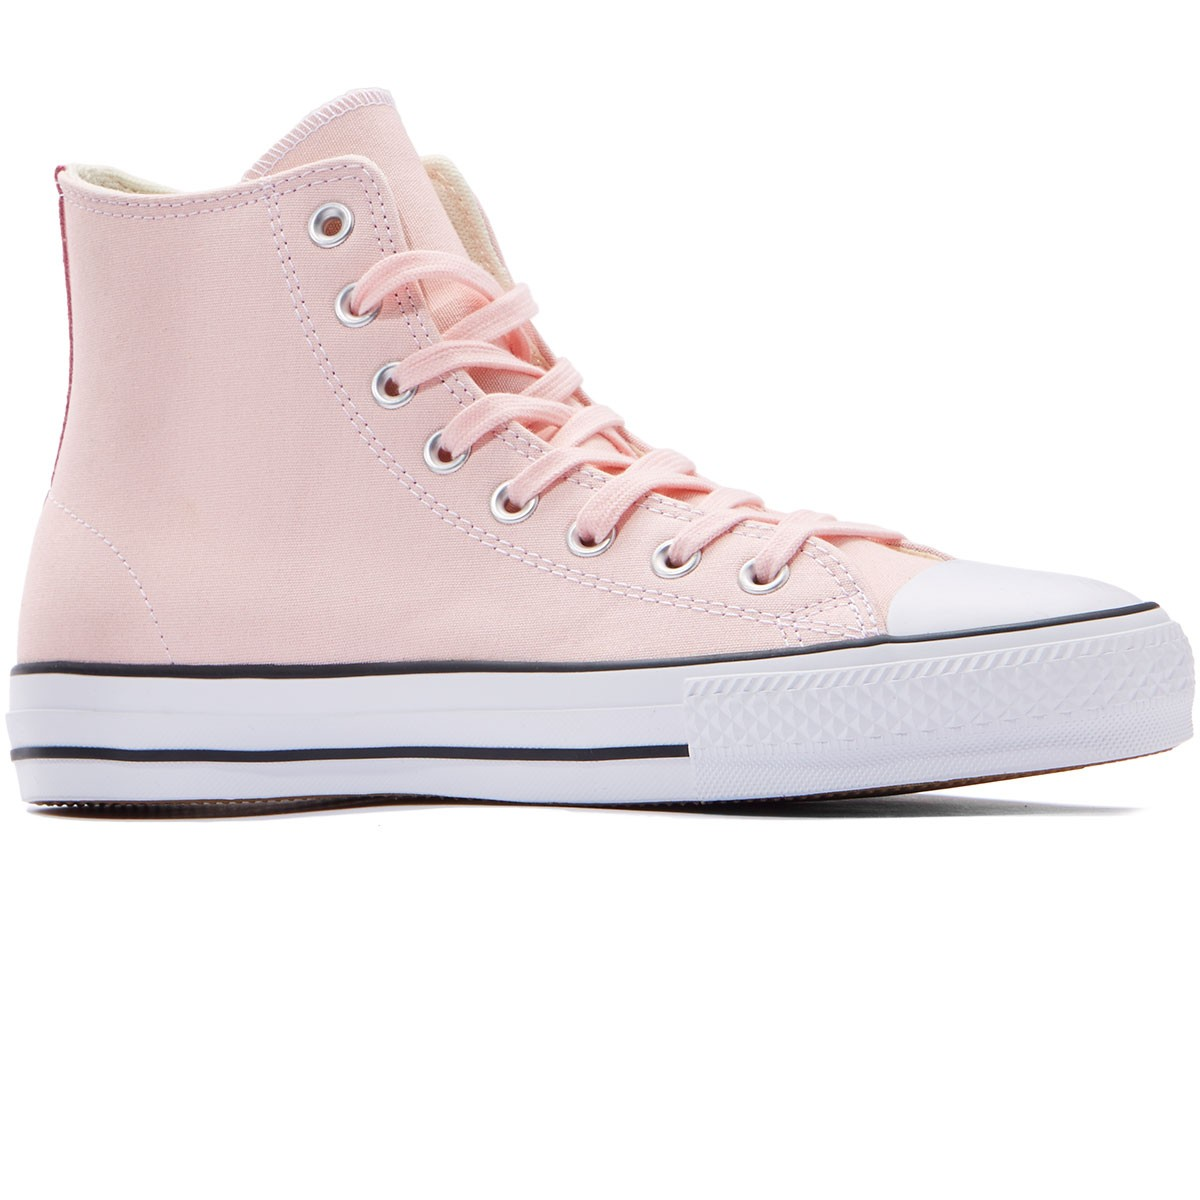 CTAS HI CANVAS/TEXTILE LTD - FOOTWEAR - High-tops & sneakers Converse 41heOksp0R